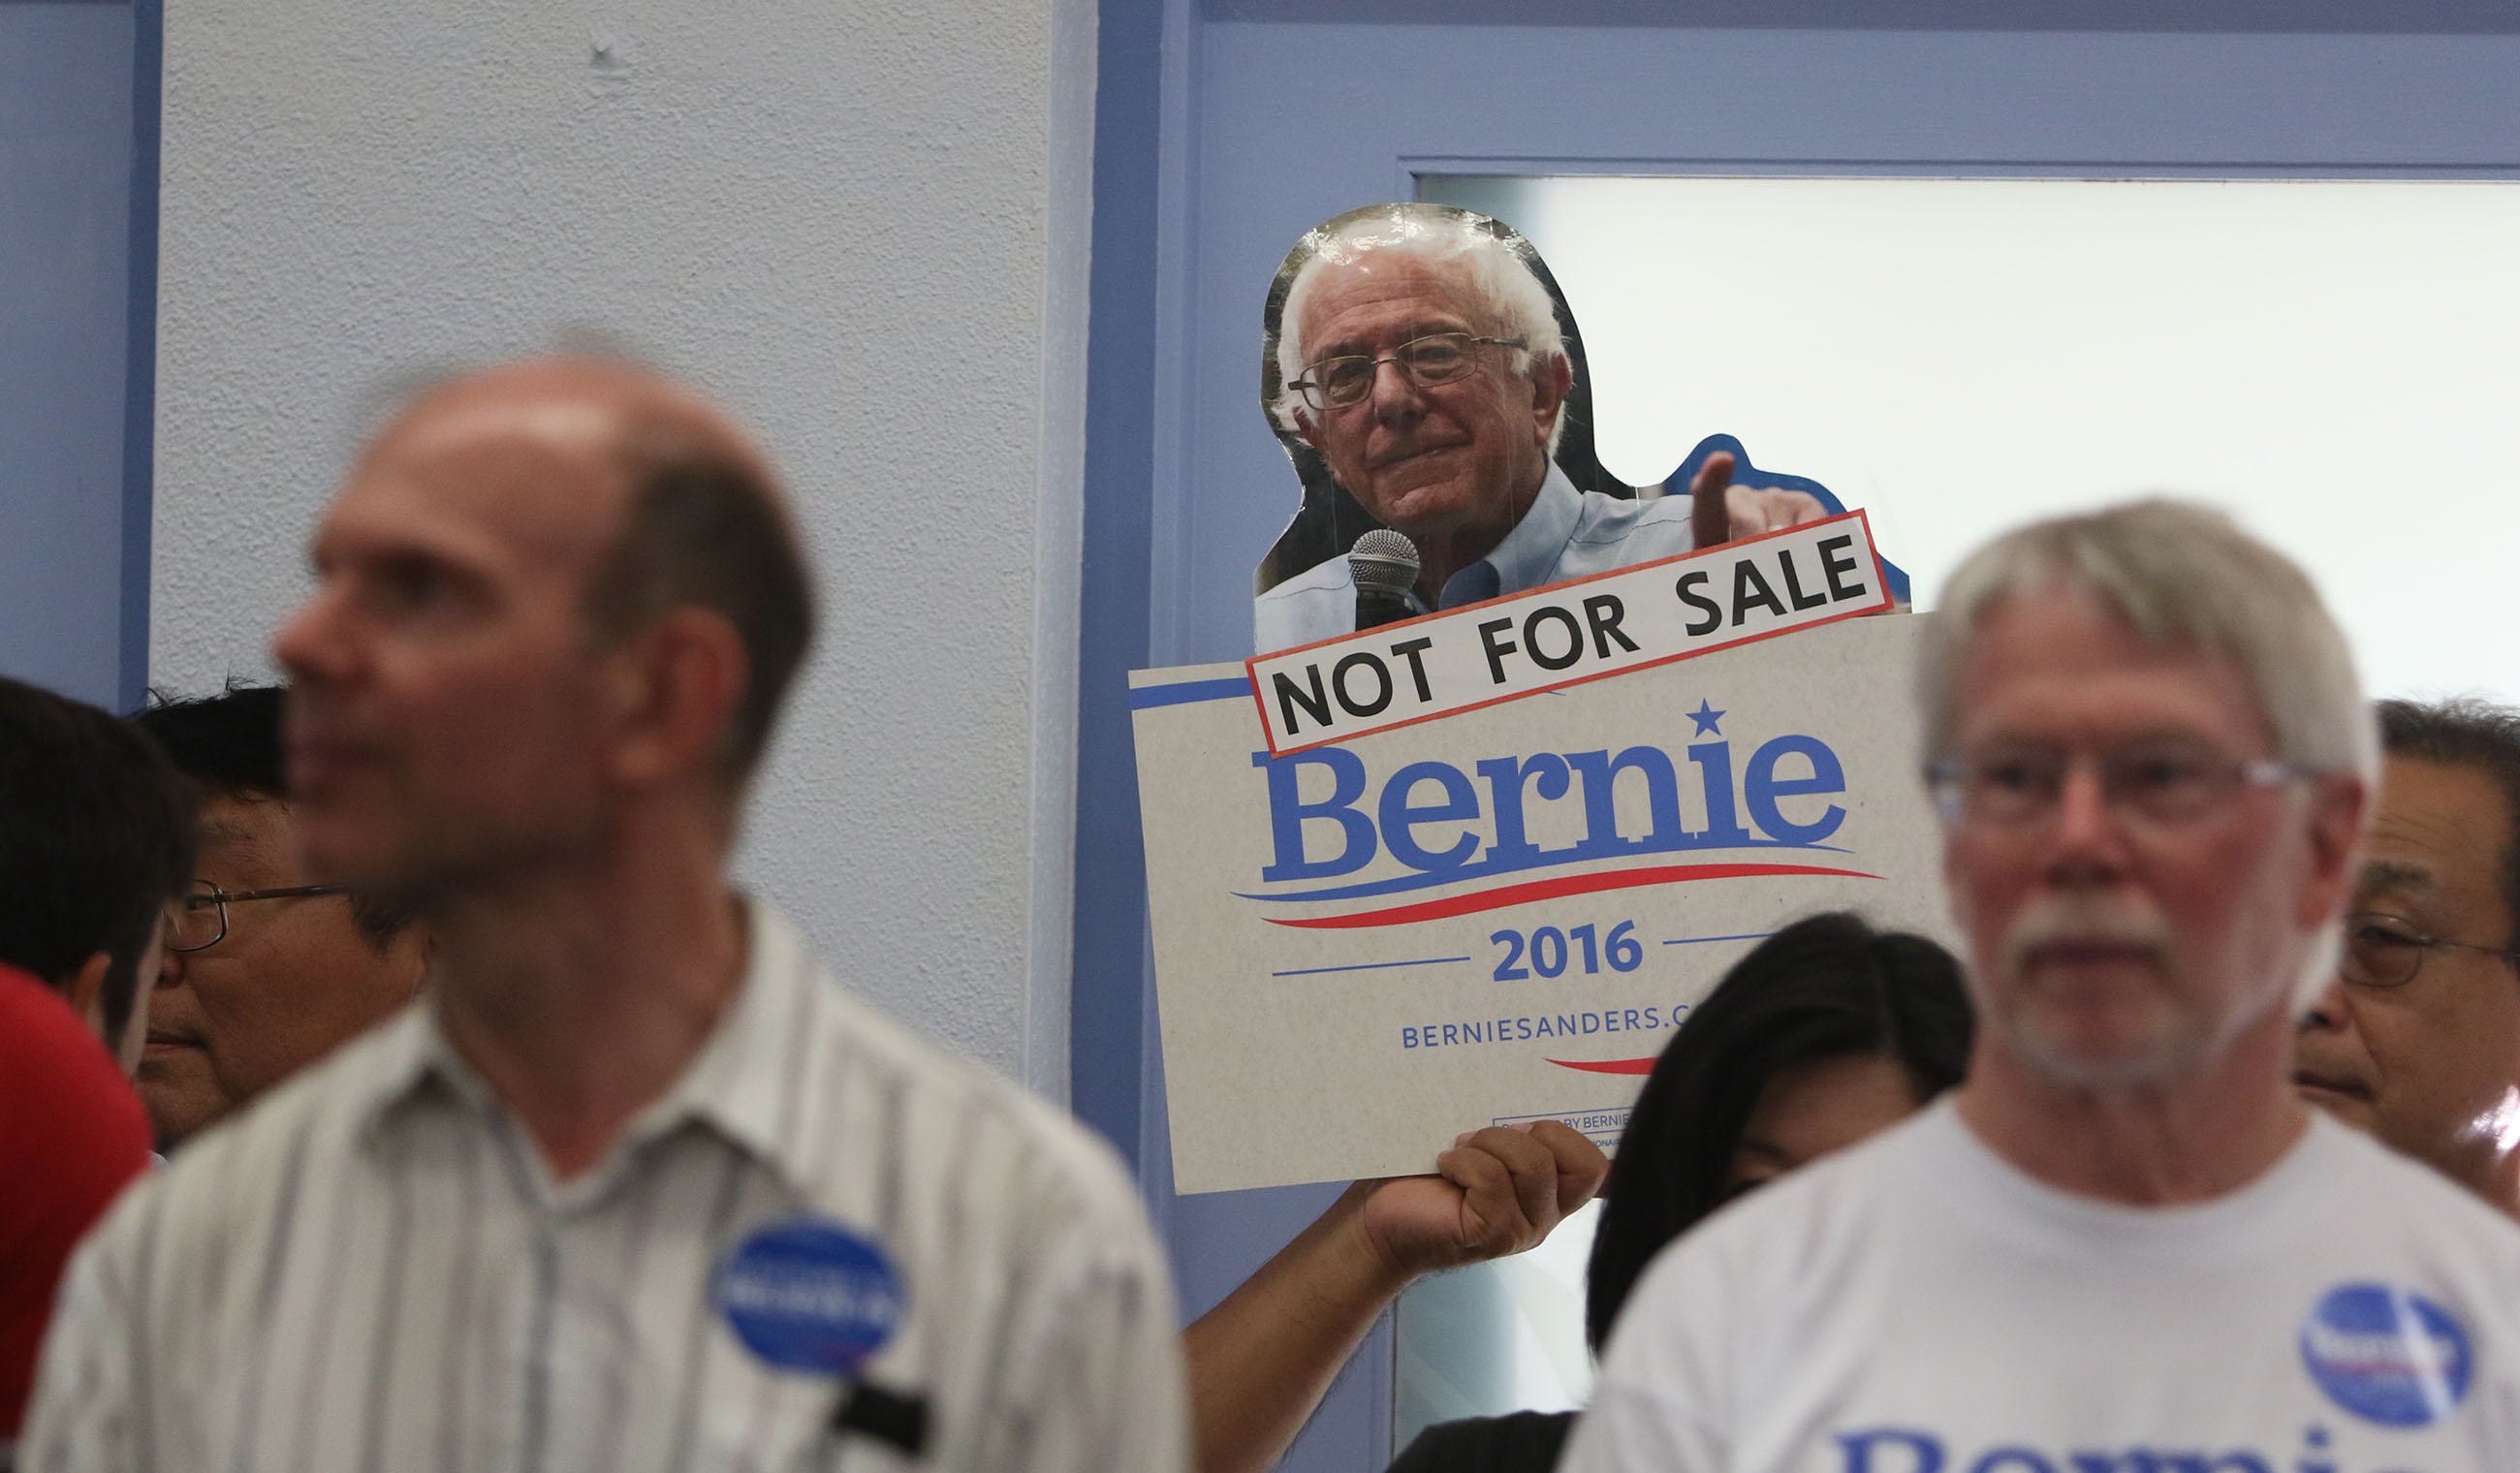 <p>March 20: Supporters of the presidential campaign of Vermont Sen. Bernie Sanders during the visit of his wife, Jane, to the Church of the Crossroads in Honolulu. Just days later, Sanders trounced Hillary Clinton in Hawaii's Democratic presidential preference poll. <em>Cory Lum/Civil Beat</em></p>